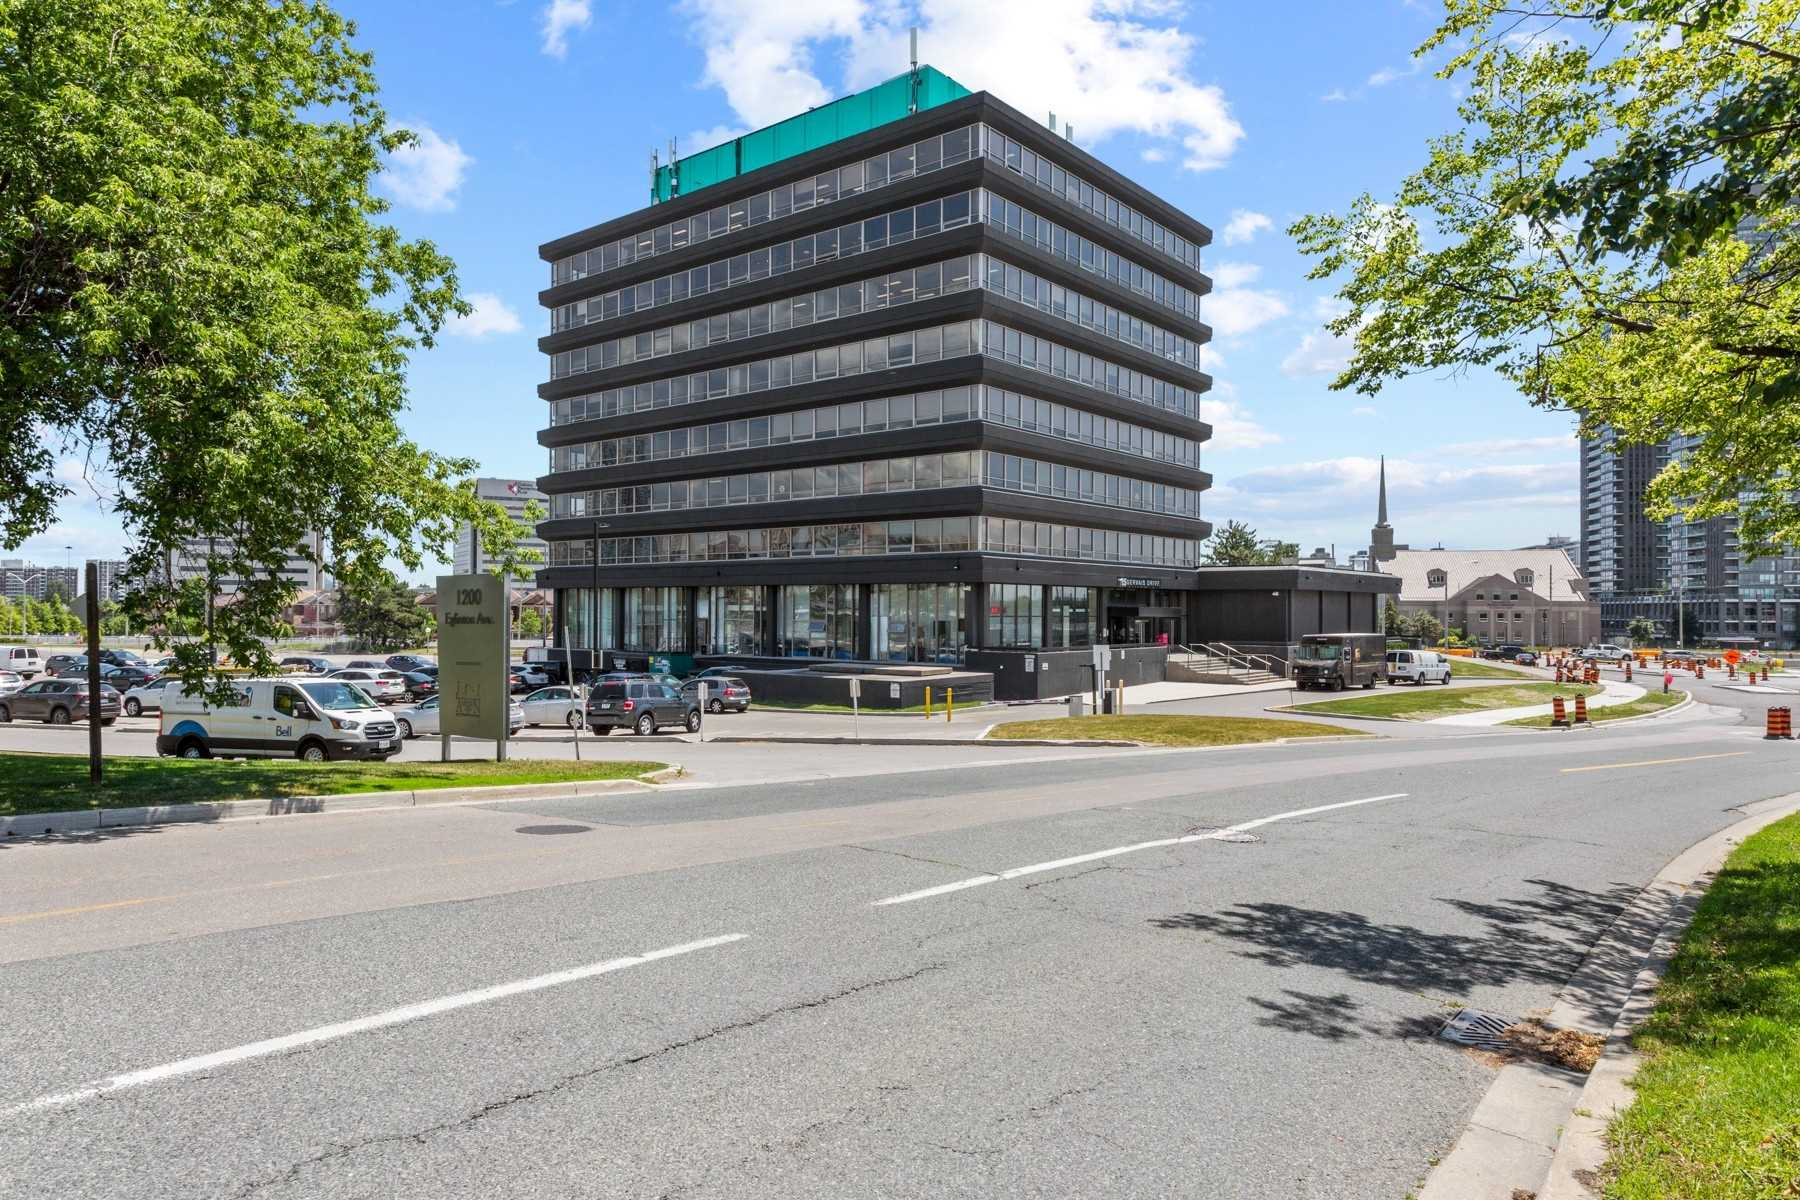 Commercial/retail For Lease In Toronto , ,Commercial/retail,For Lease,101,Gervais